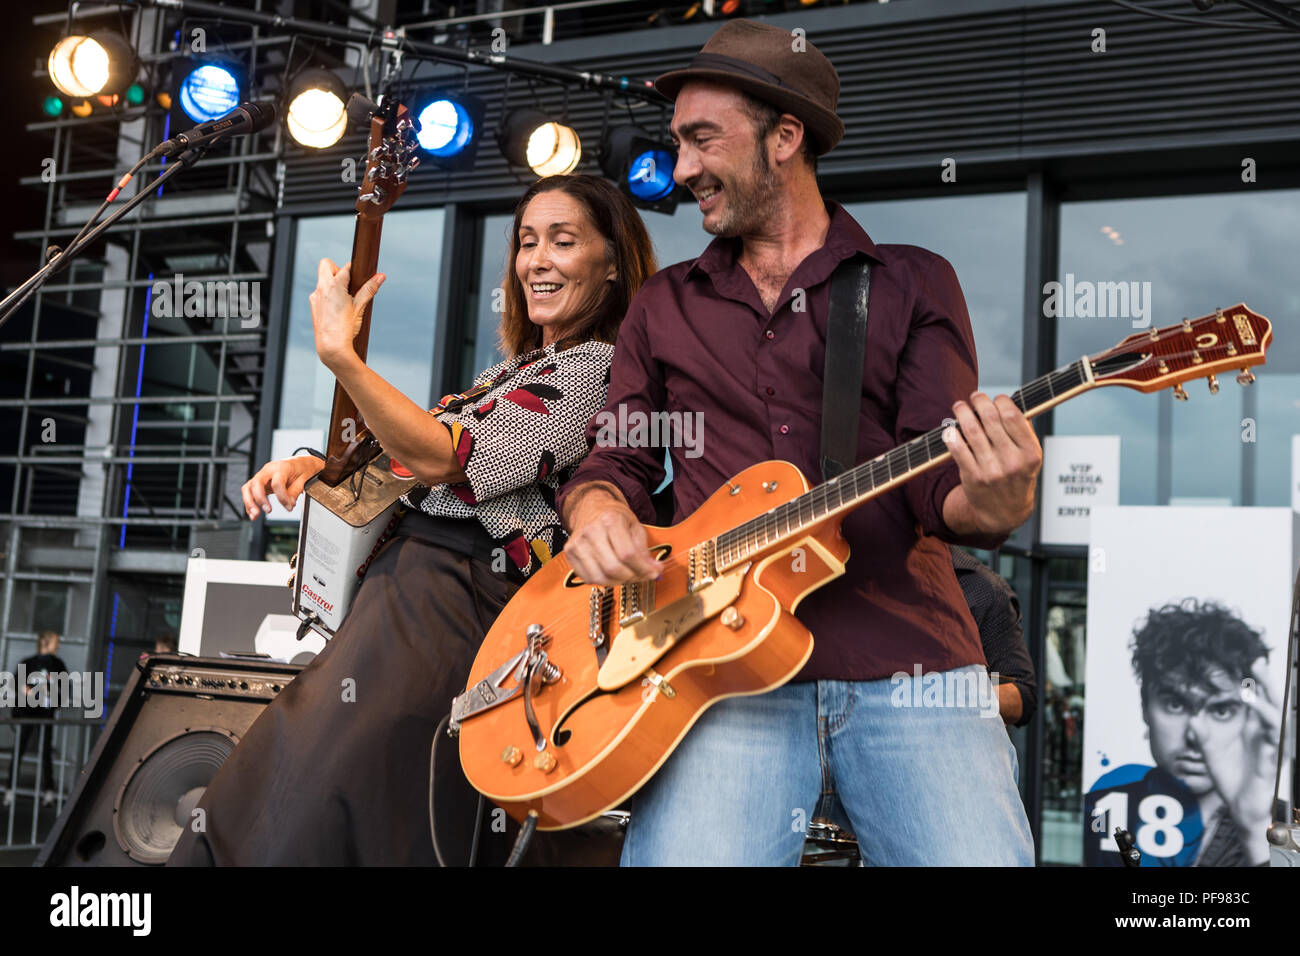 French band Ziia & The Swing Mates live at the 26th Blue Balls Festival in Lucerne, Switzerland Ziia, lead - Stock Image